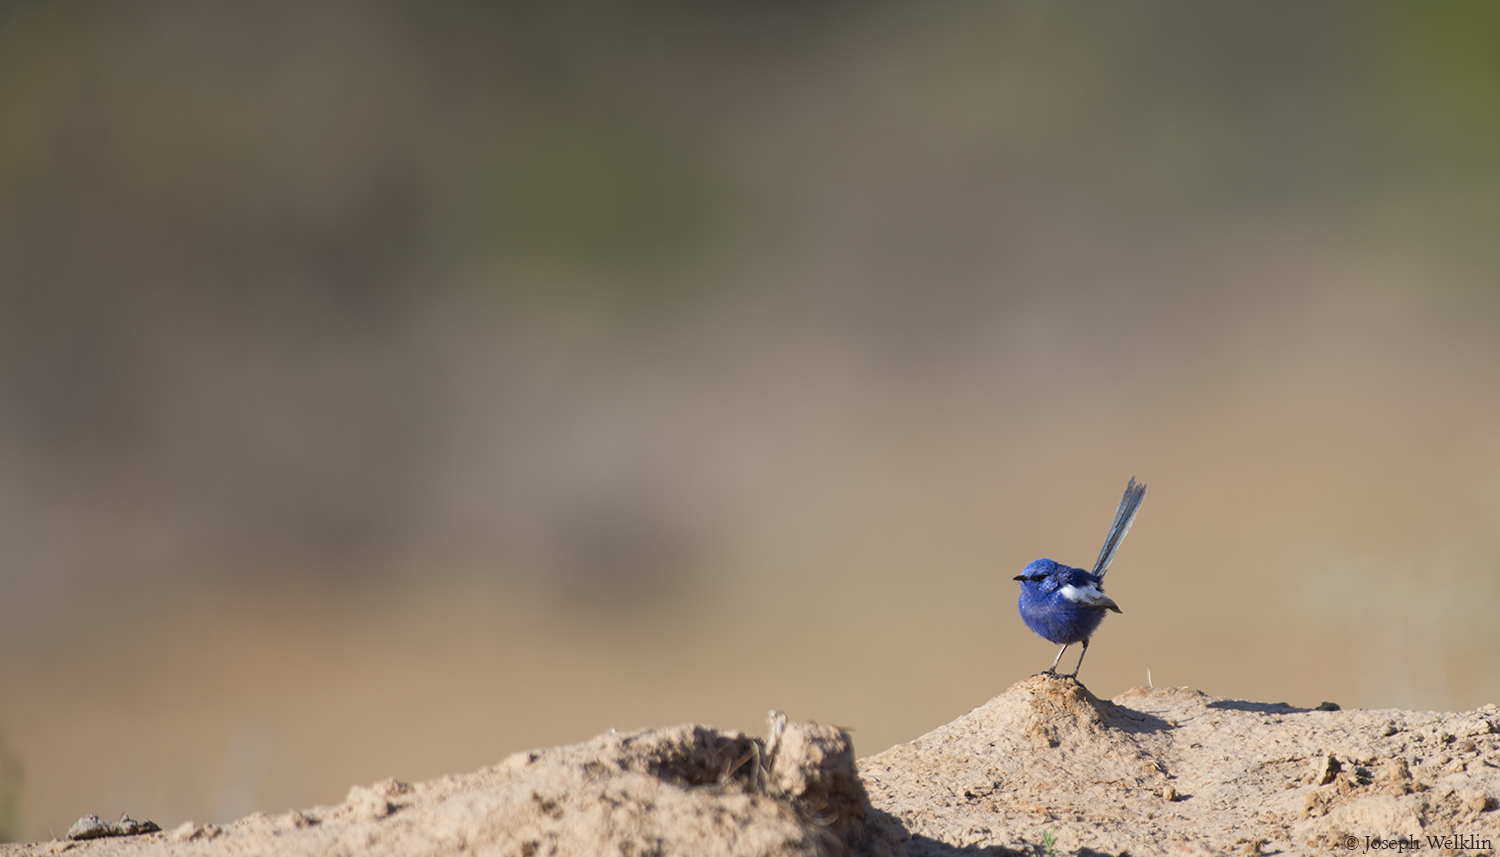 Male White-winged Fairy-wren. Photographed in Western Queensland, Australia.